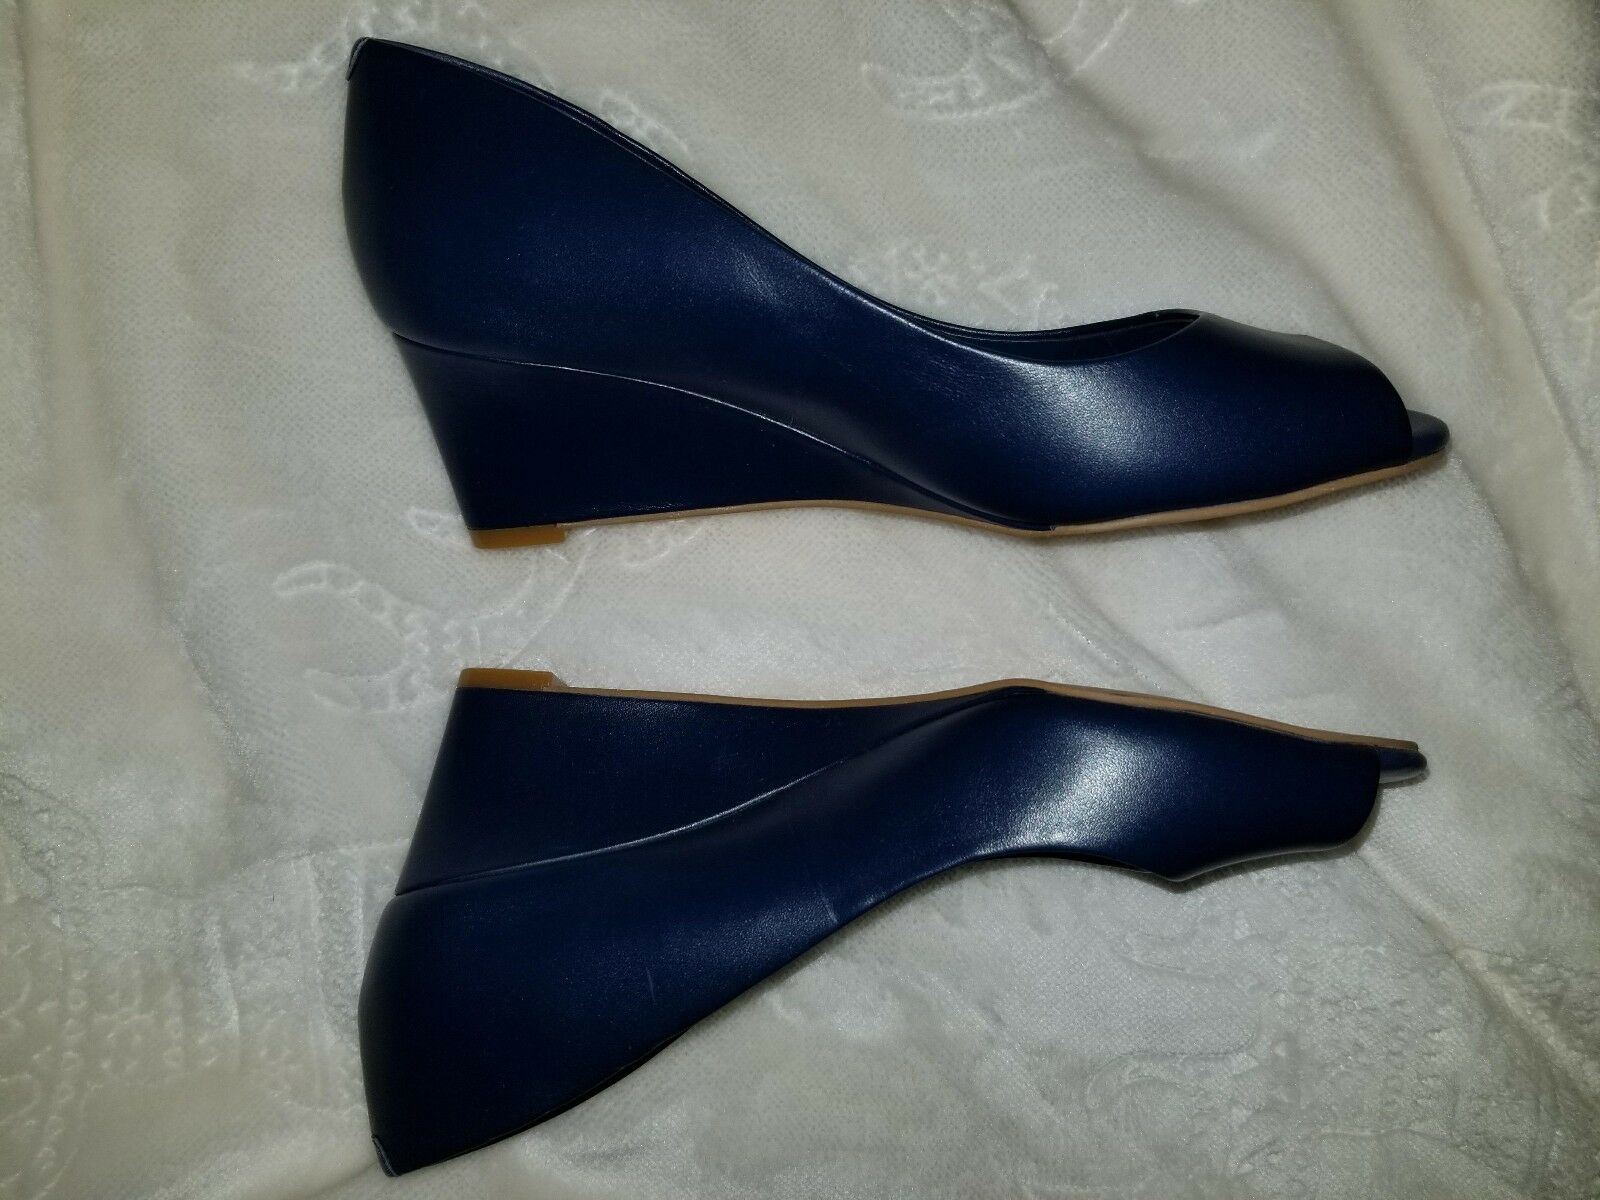 Chaussures Of Prey-Femme bleu Marine TALONS COMPENSES-Taille 5-NEUF - (offre acceptée)